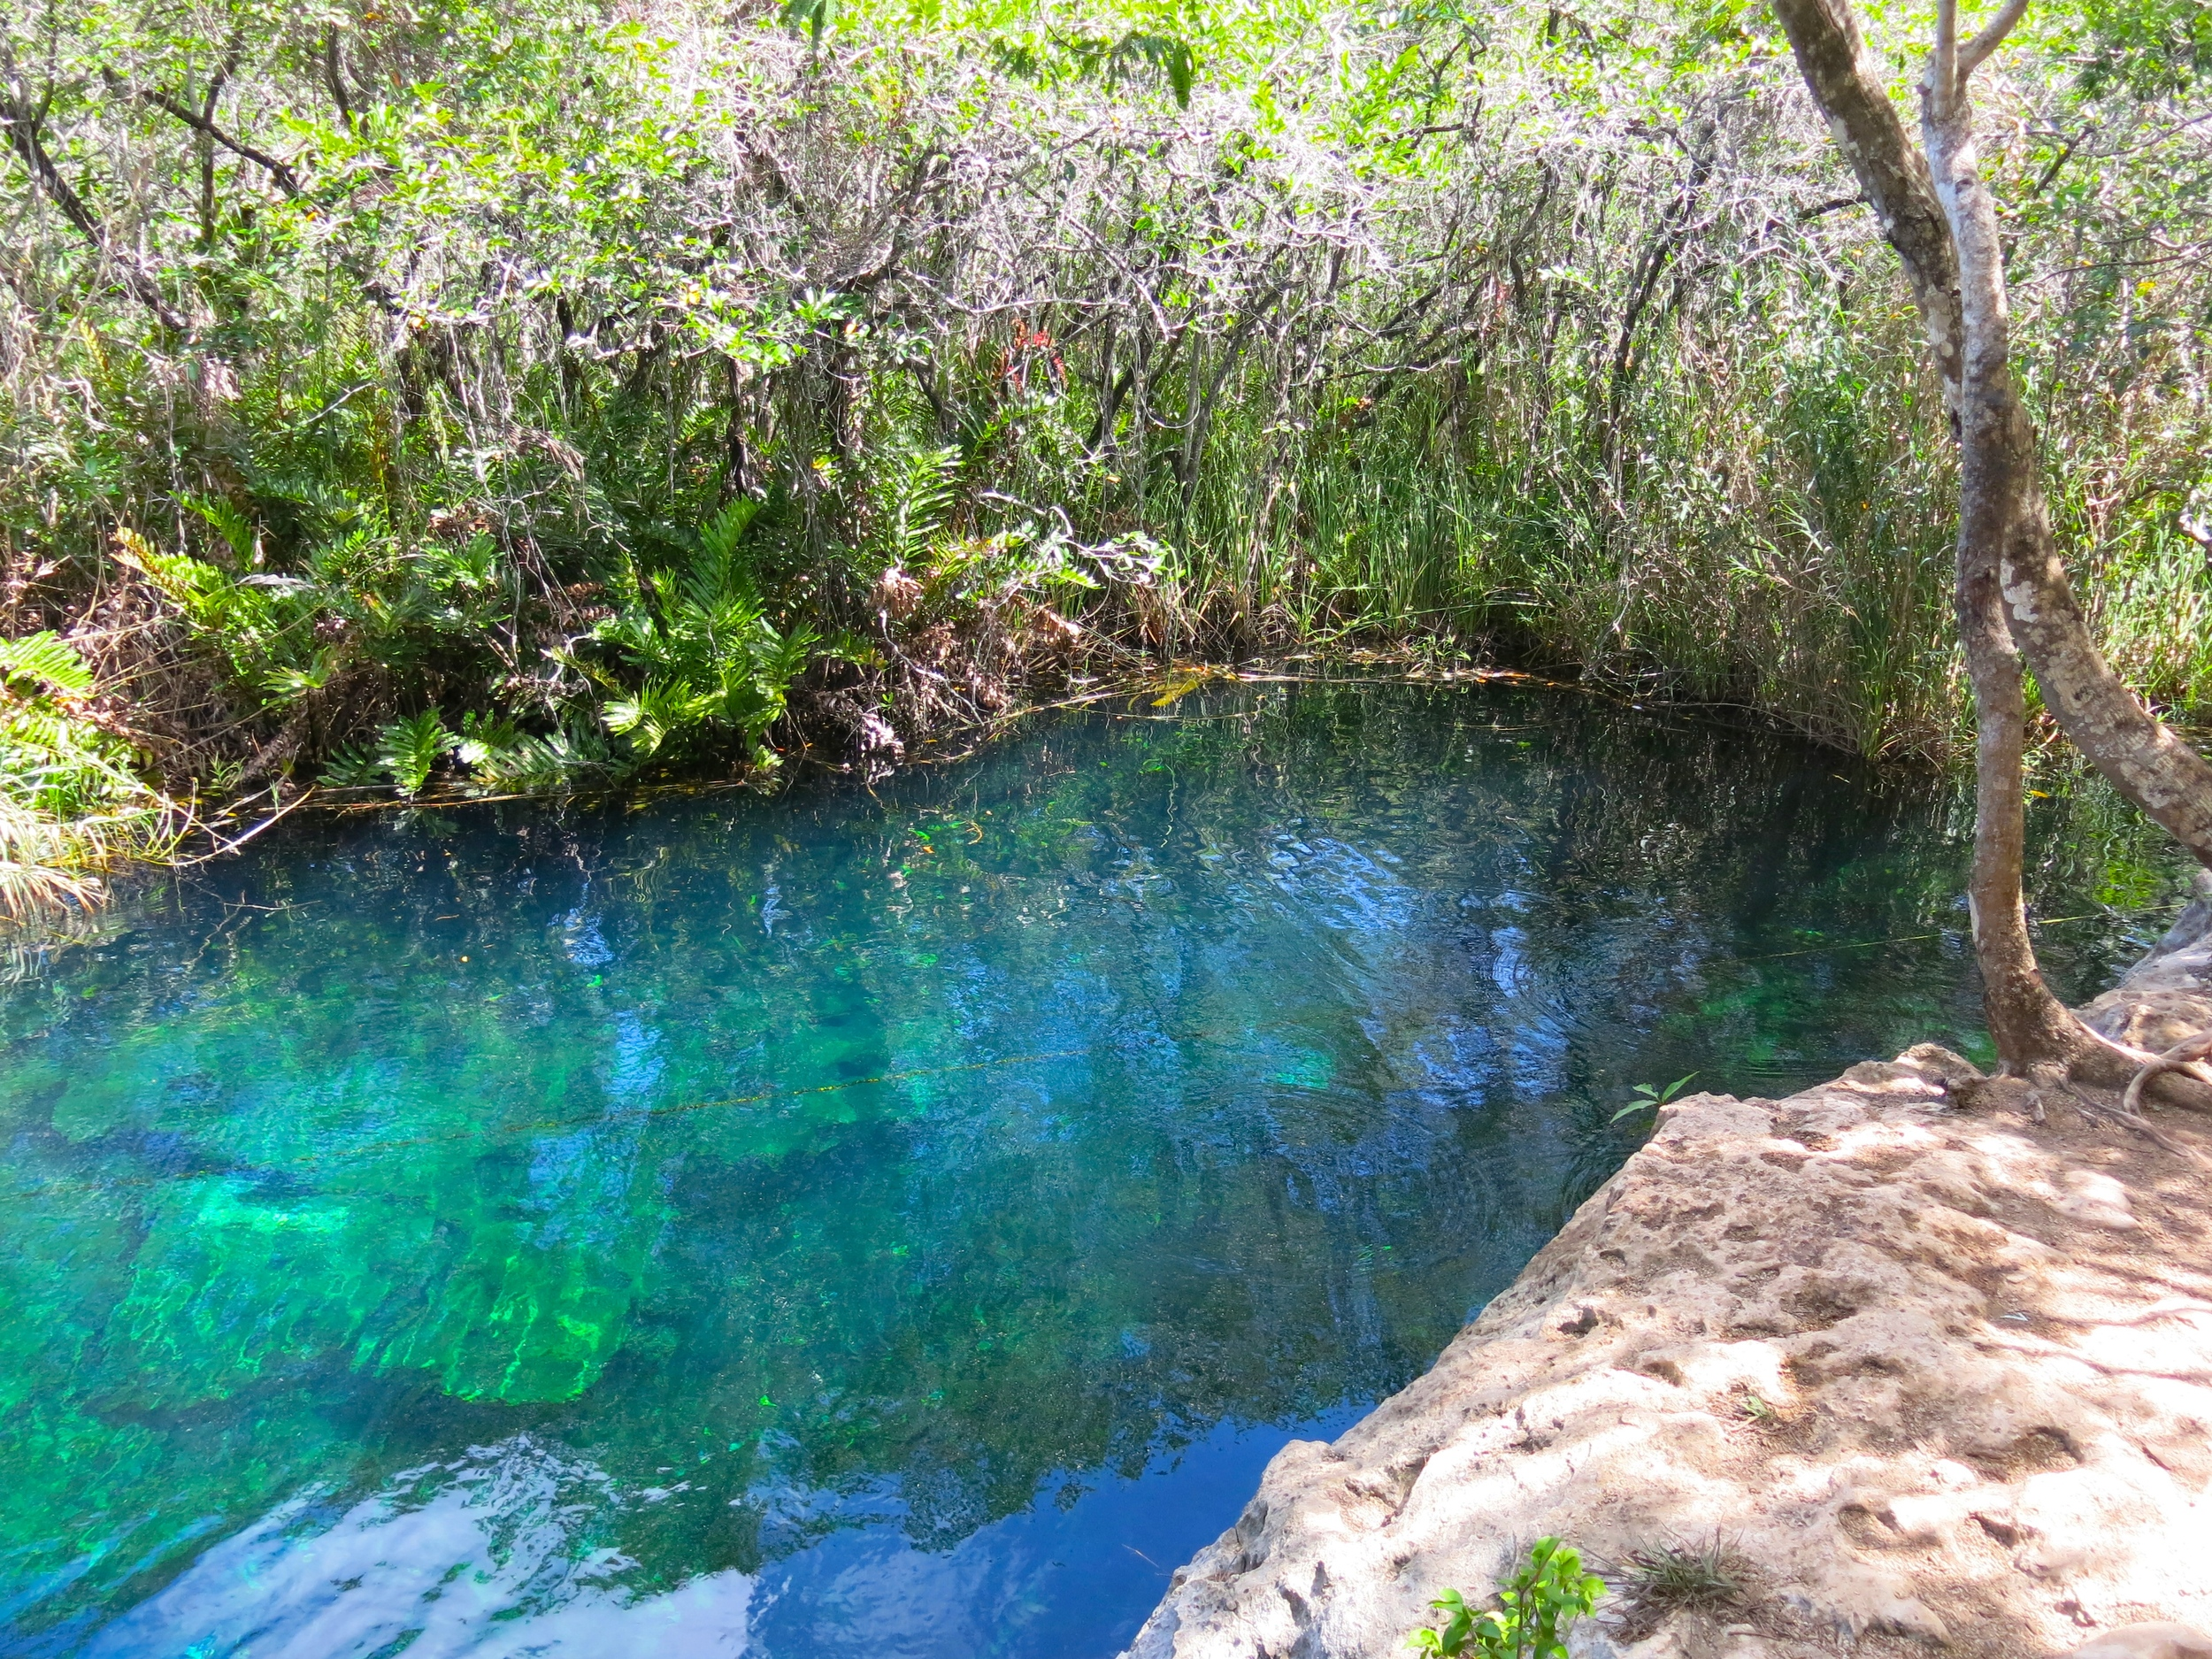 Escondido means hidden and is a well kept secret at that. This beautiful cenote is located off highway 307 just past Tulum. Your entry fee is paid at the adjacent Cenote Cristal (see notes below). When you leave Cristal's parking lot go directly across the highway. There you will find an unmarked dirt road with a closed metal gate. Open the gate and drive through the jungle for about a mile and you will reach Escondido.